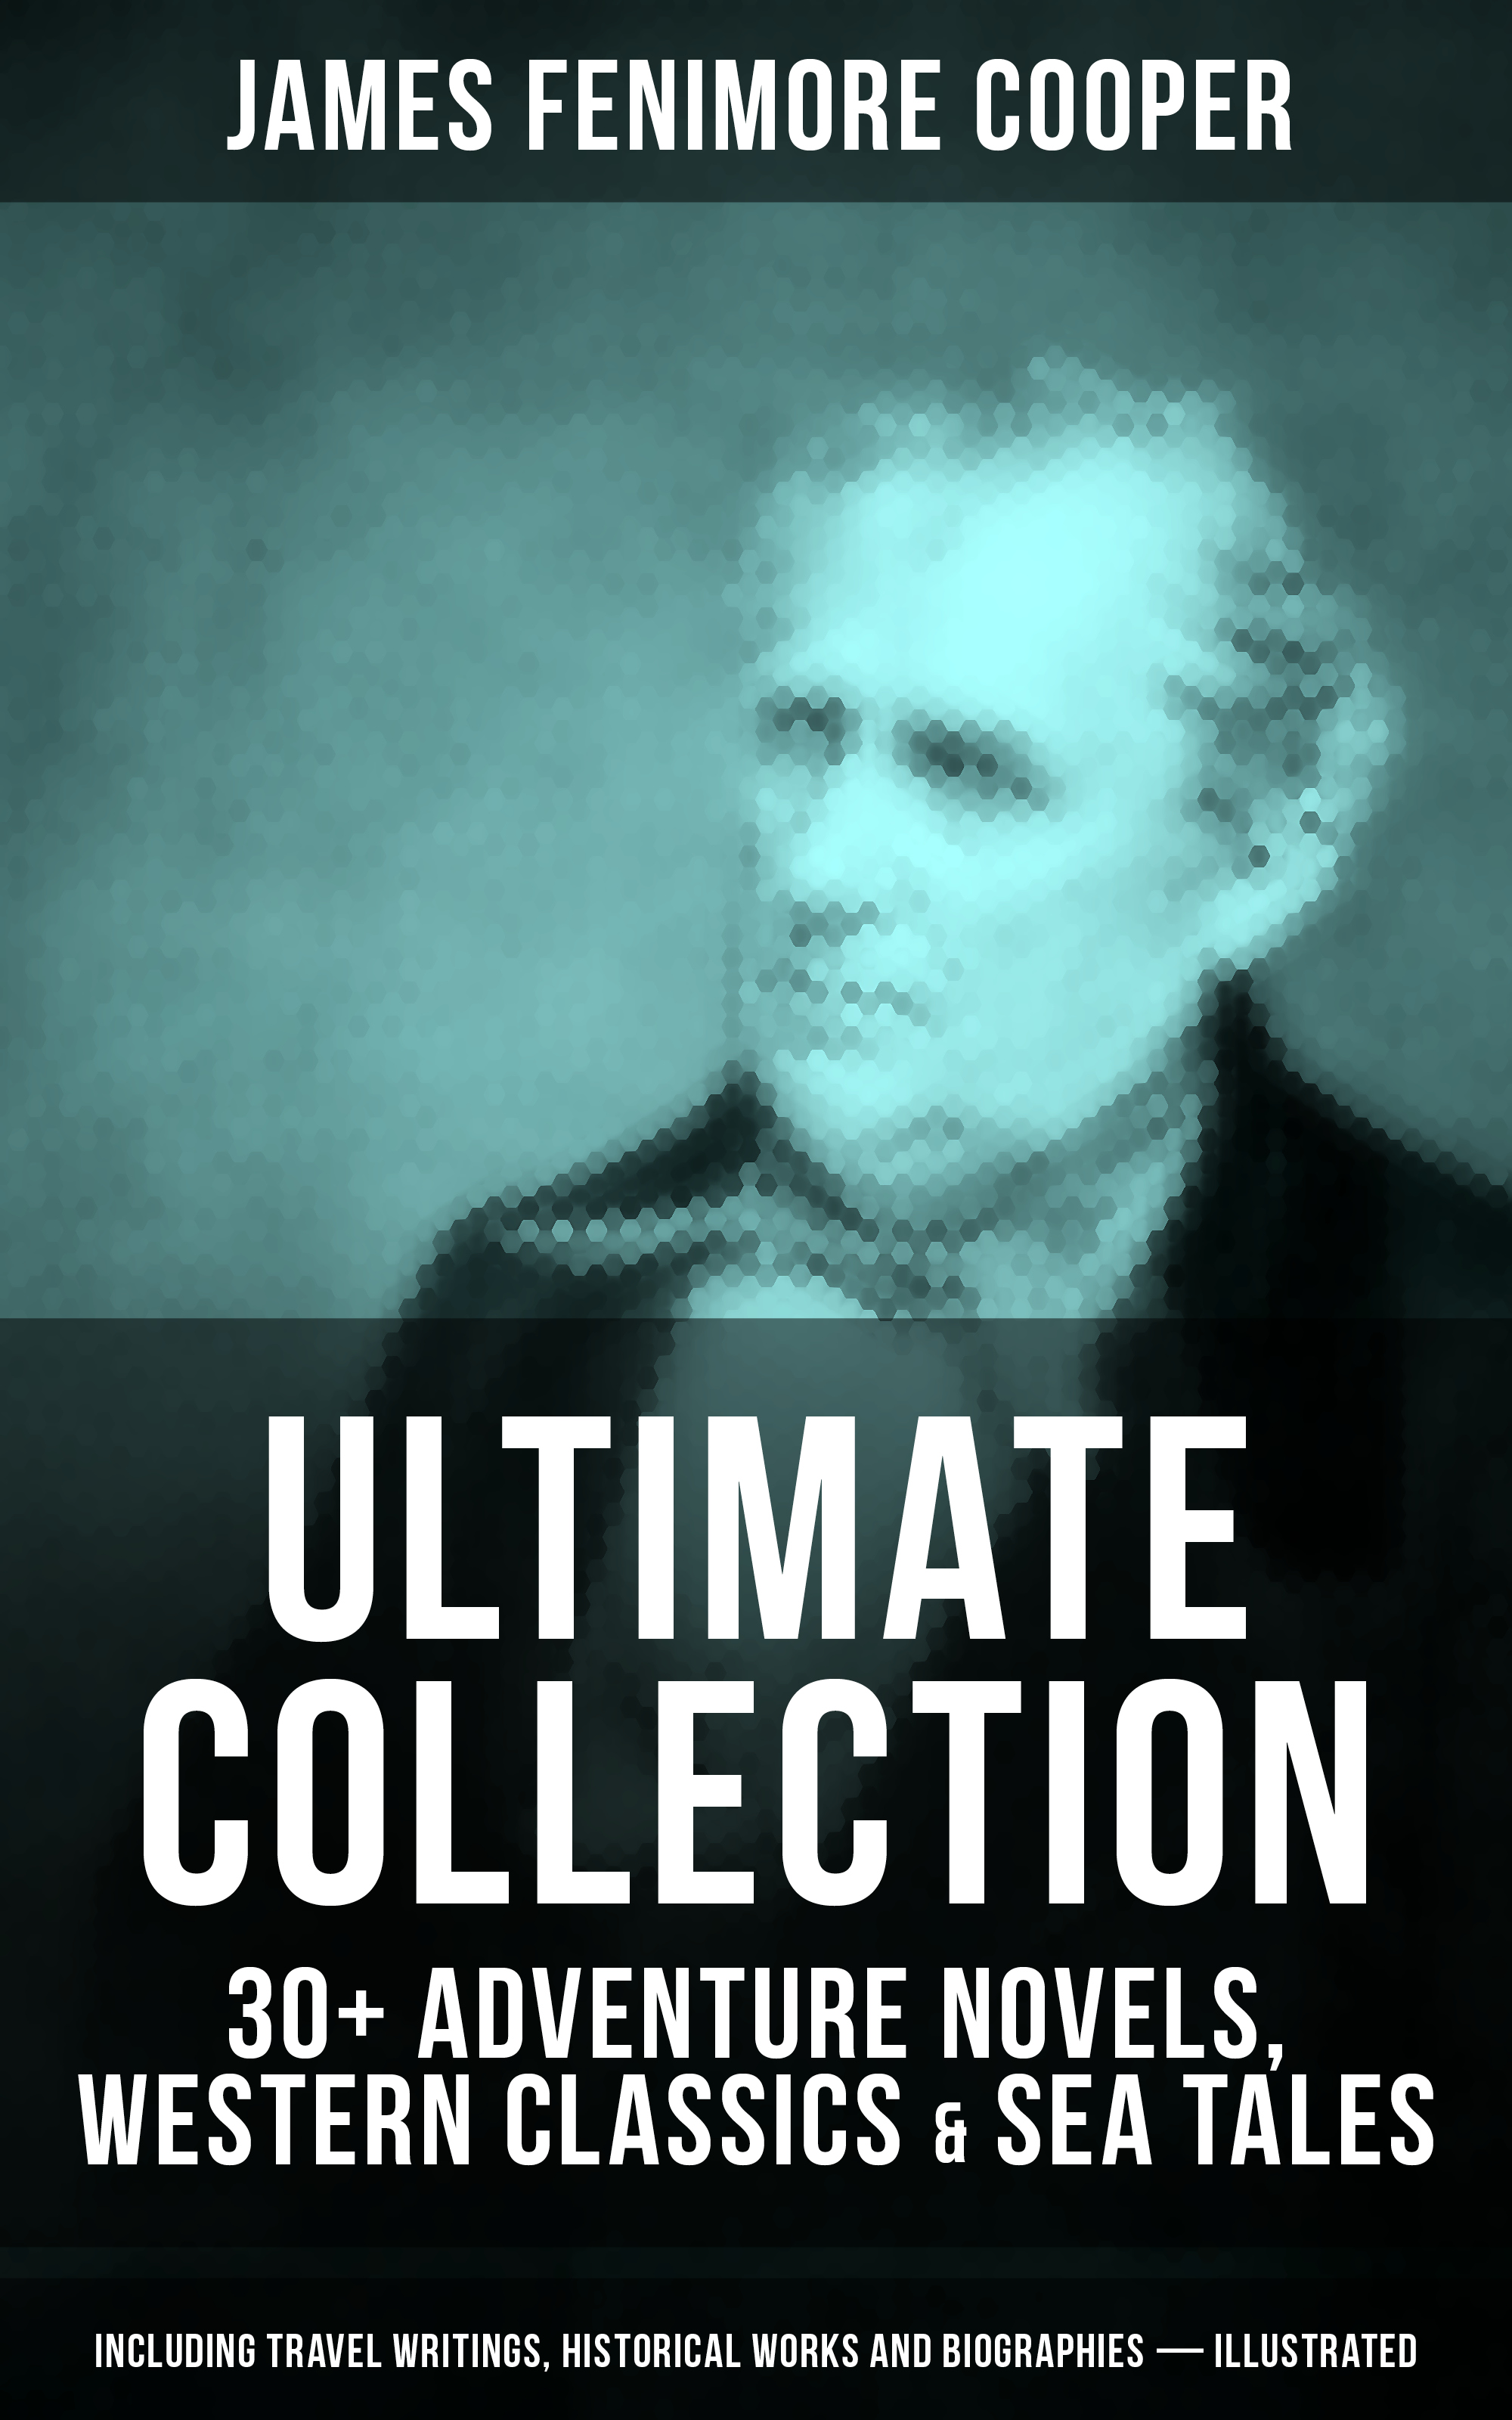 цена James Fenimore Cooper JAMES FENIMORE COOPER Ultimate Collection: 30+ Adventure Novels, Western Classics & Sea Tales (Including Travel Writings, Historical Works and Biographies) - Illustrated